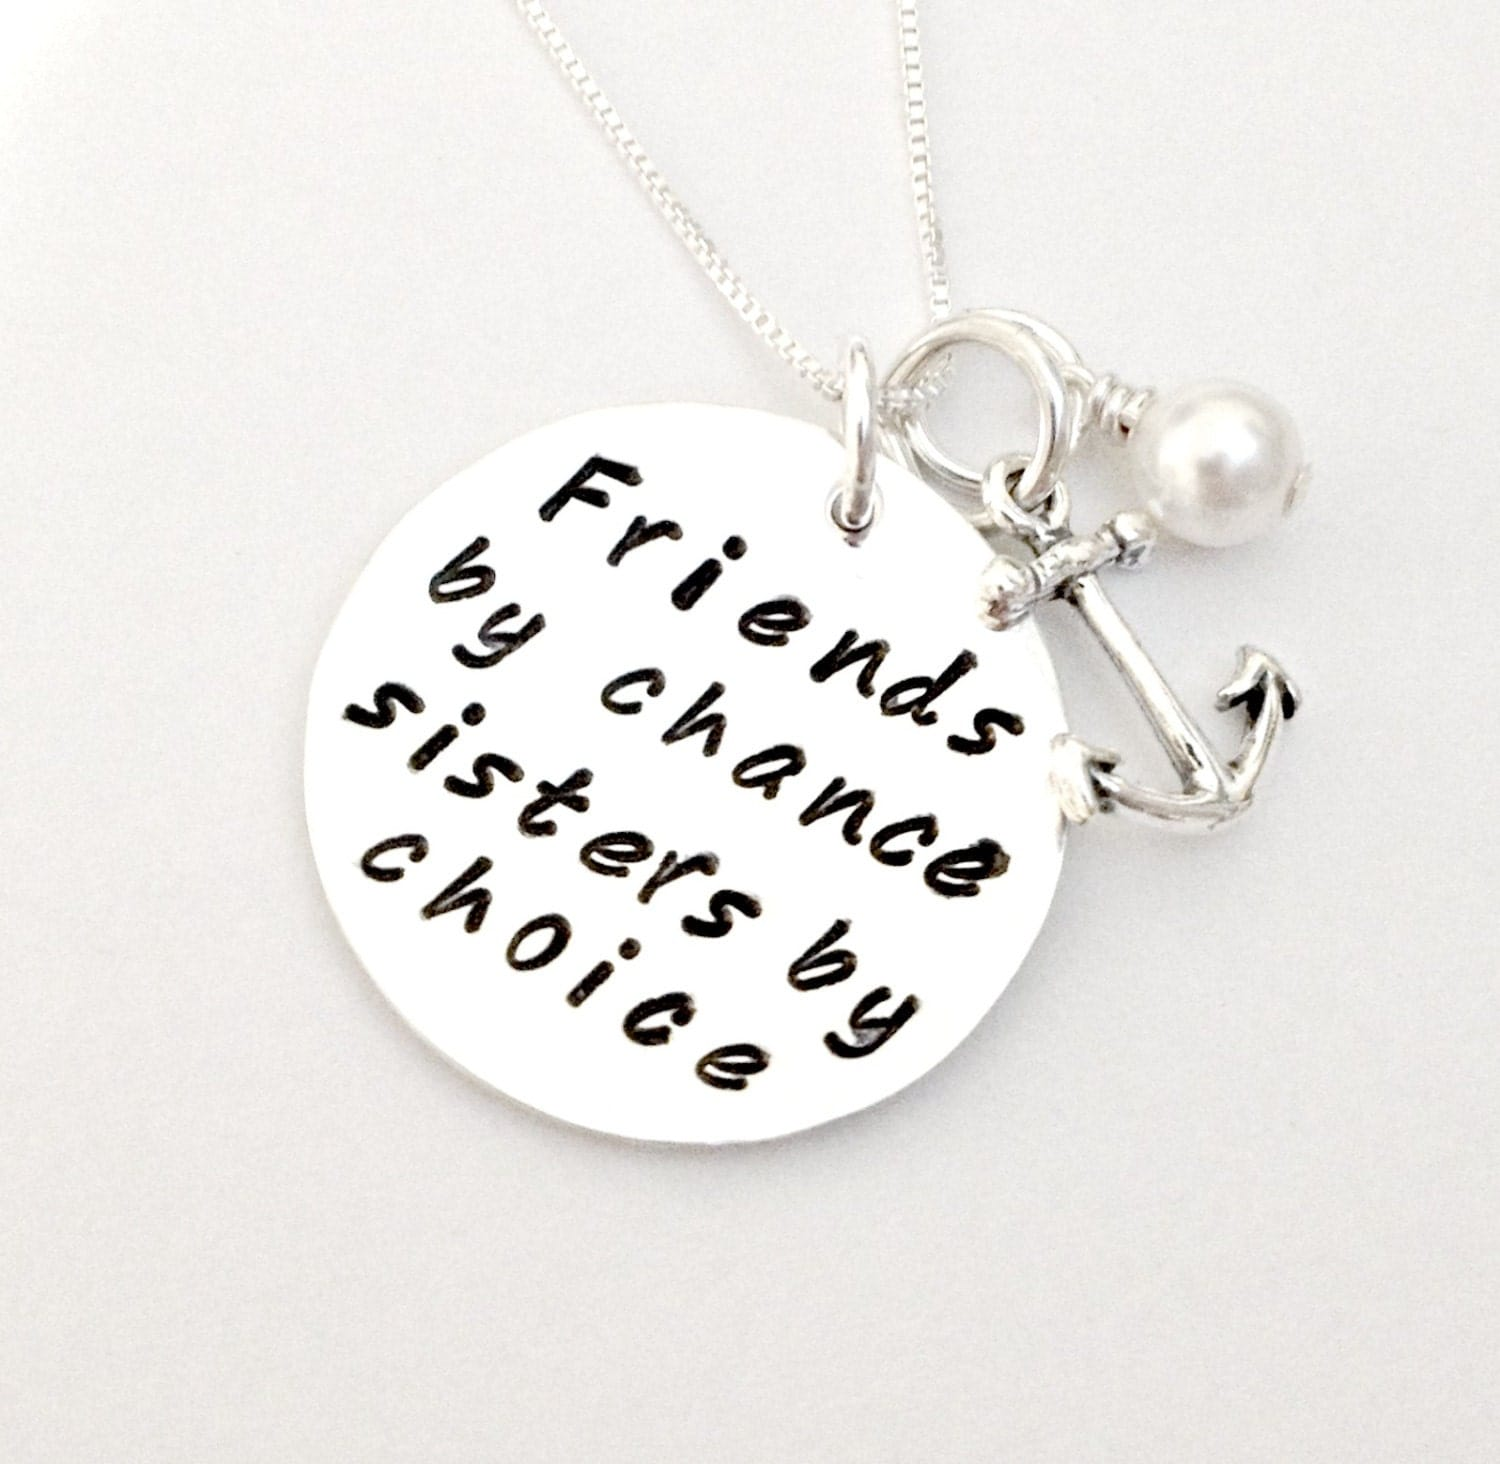 Friendship Quotes Jewelry: Friends By Chance Sisters By Choice Personalized Hand